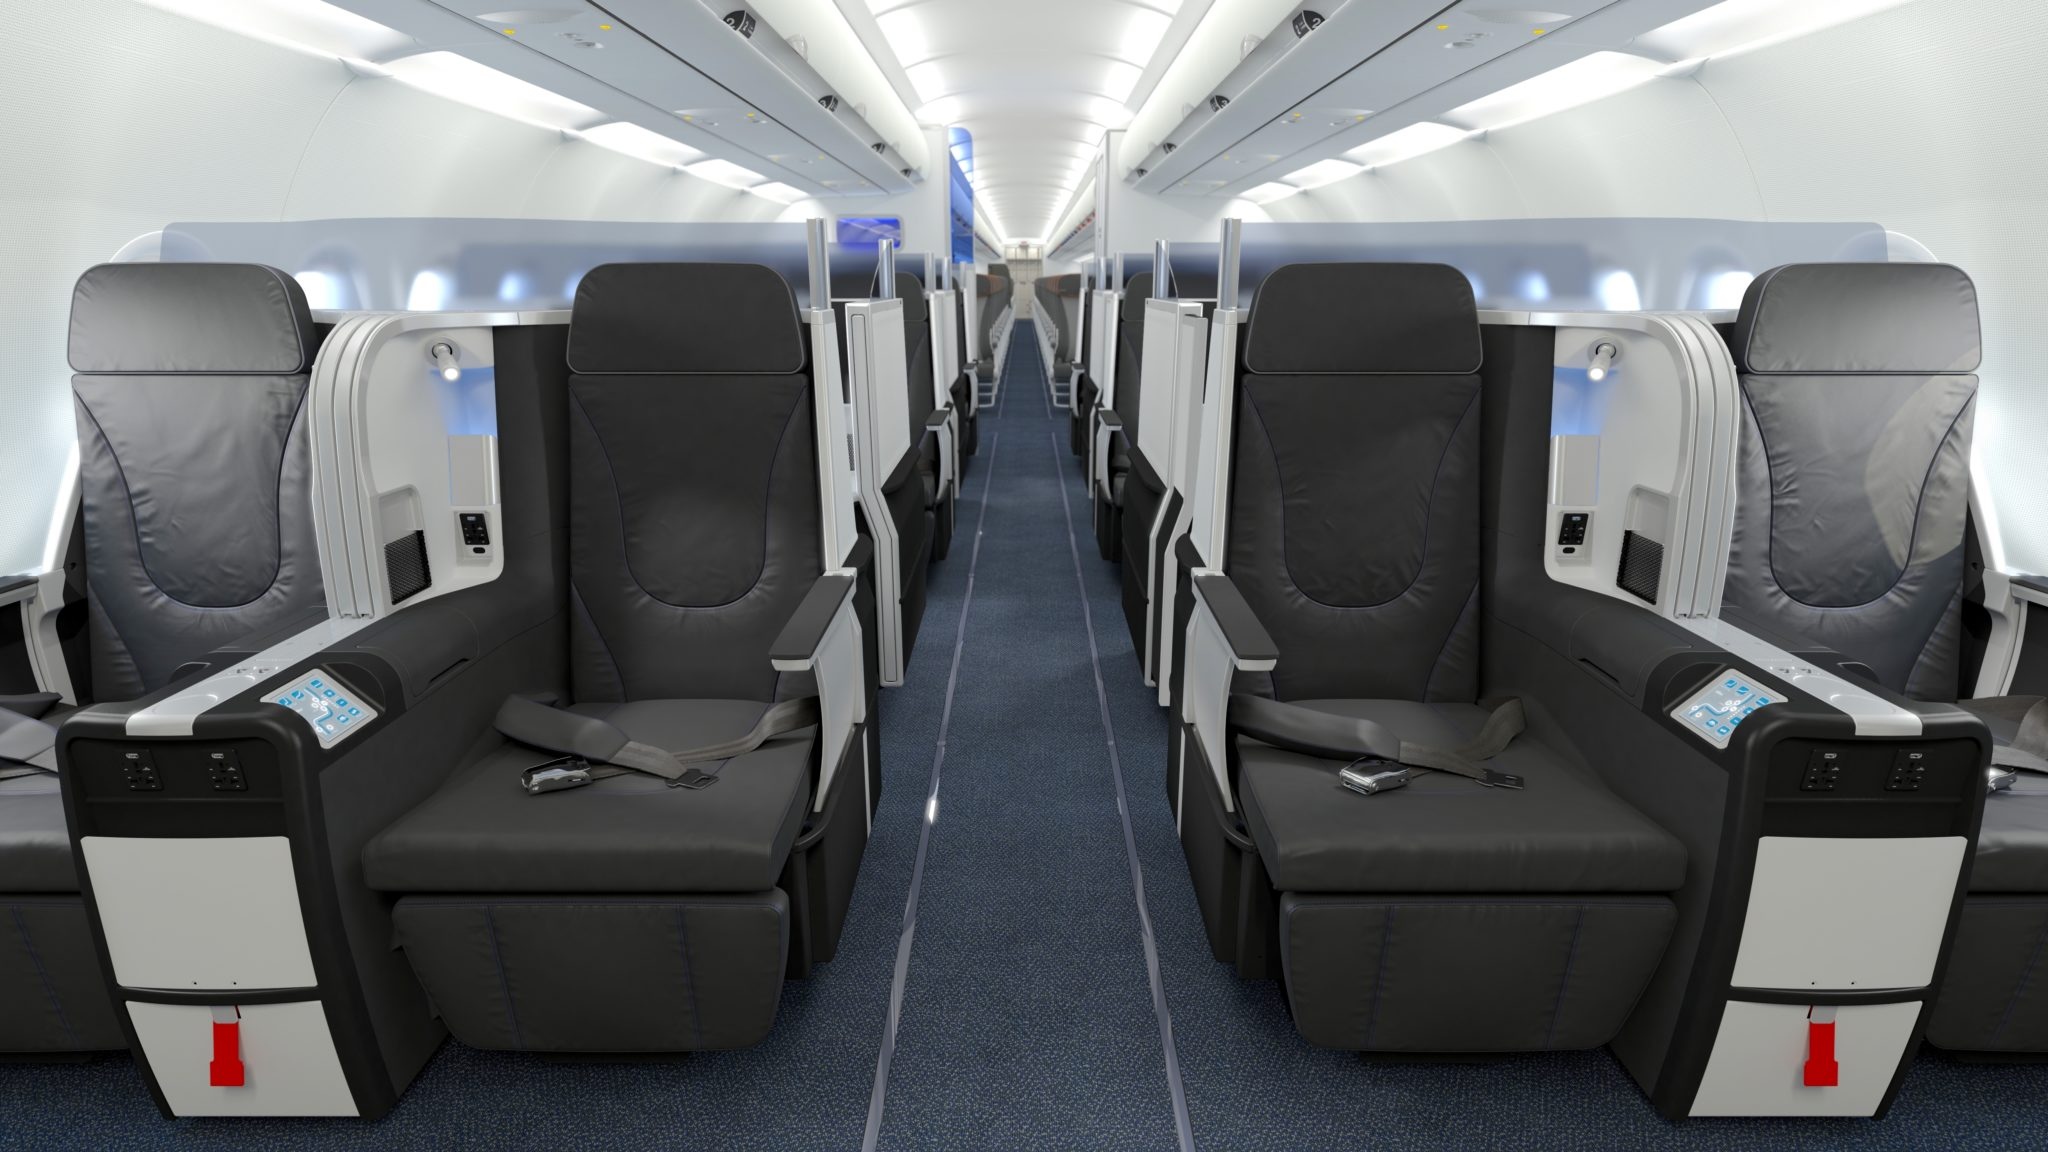 Mas Ceo Thompson Developing New Direct Aisle Access Seat